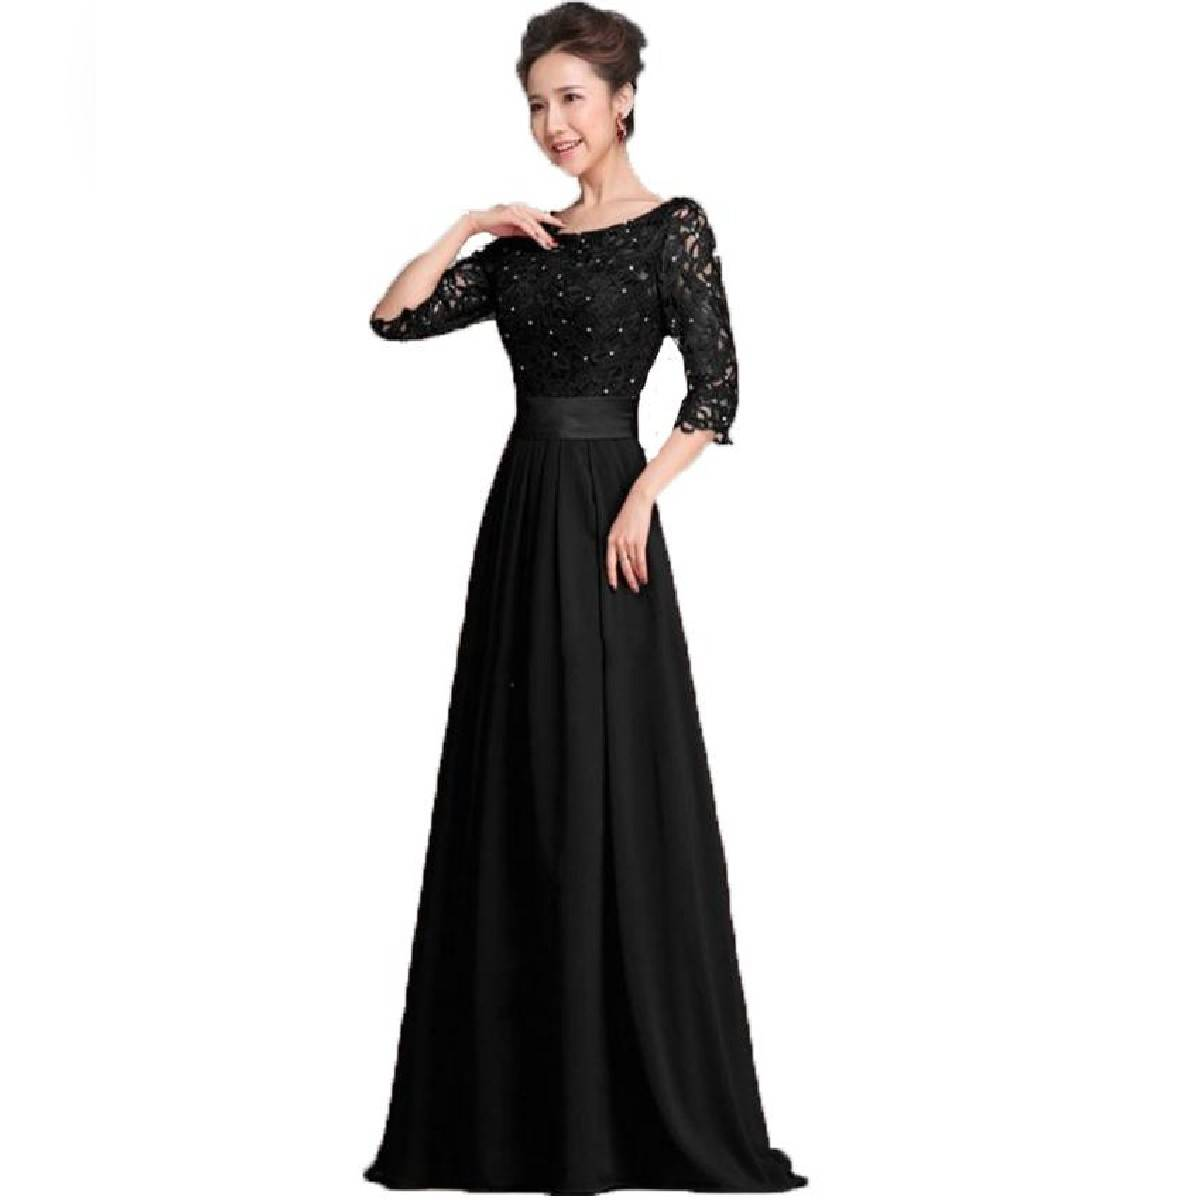 Black Evening Dress With Pearl Detailing For Women